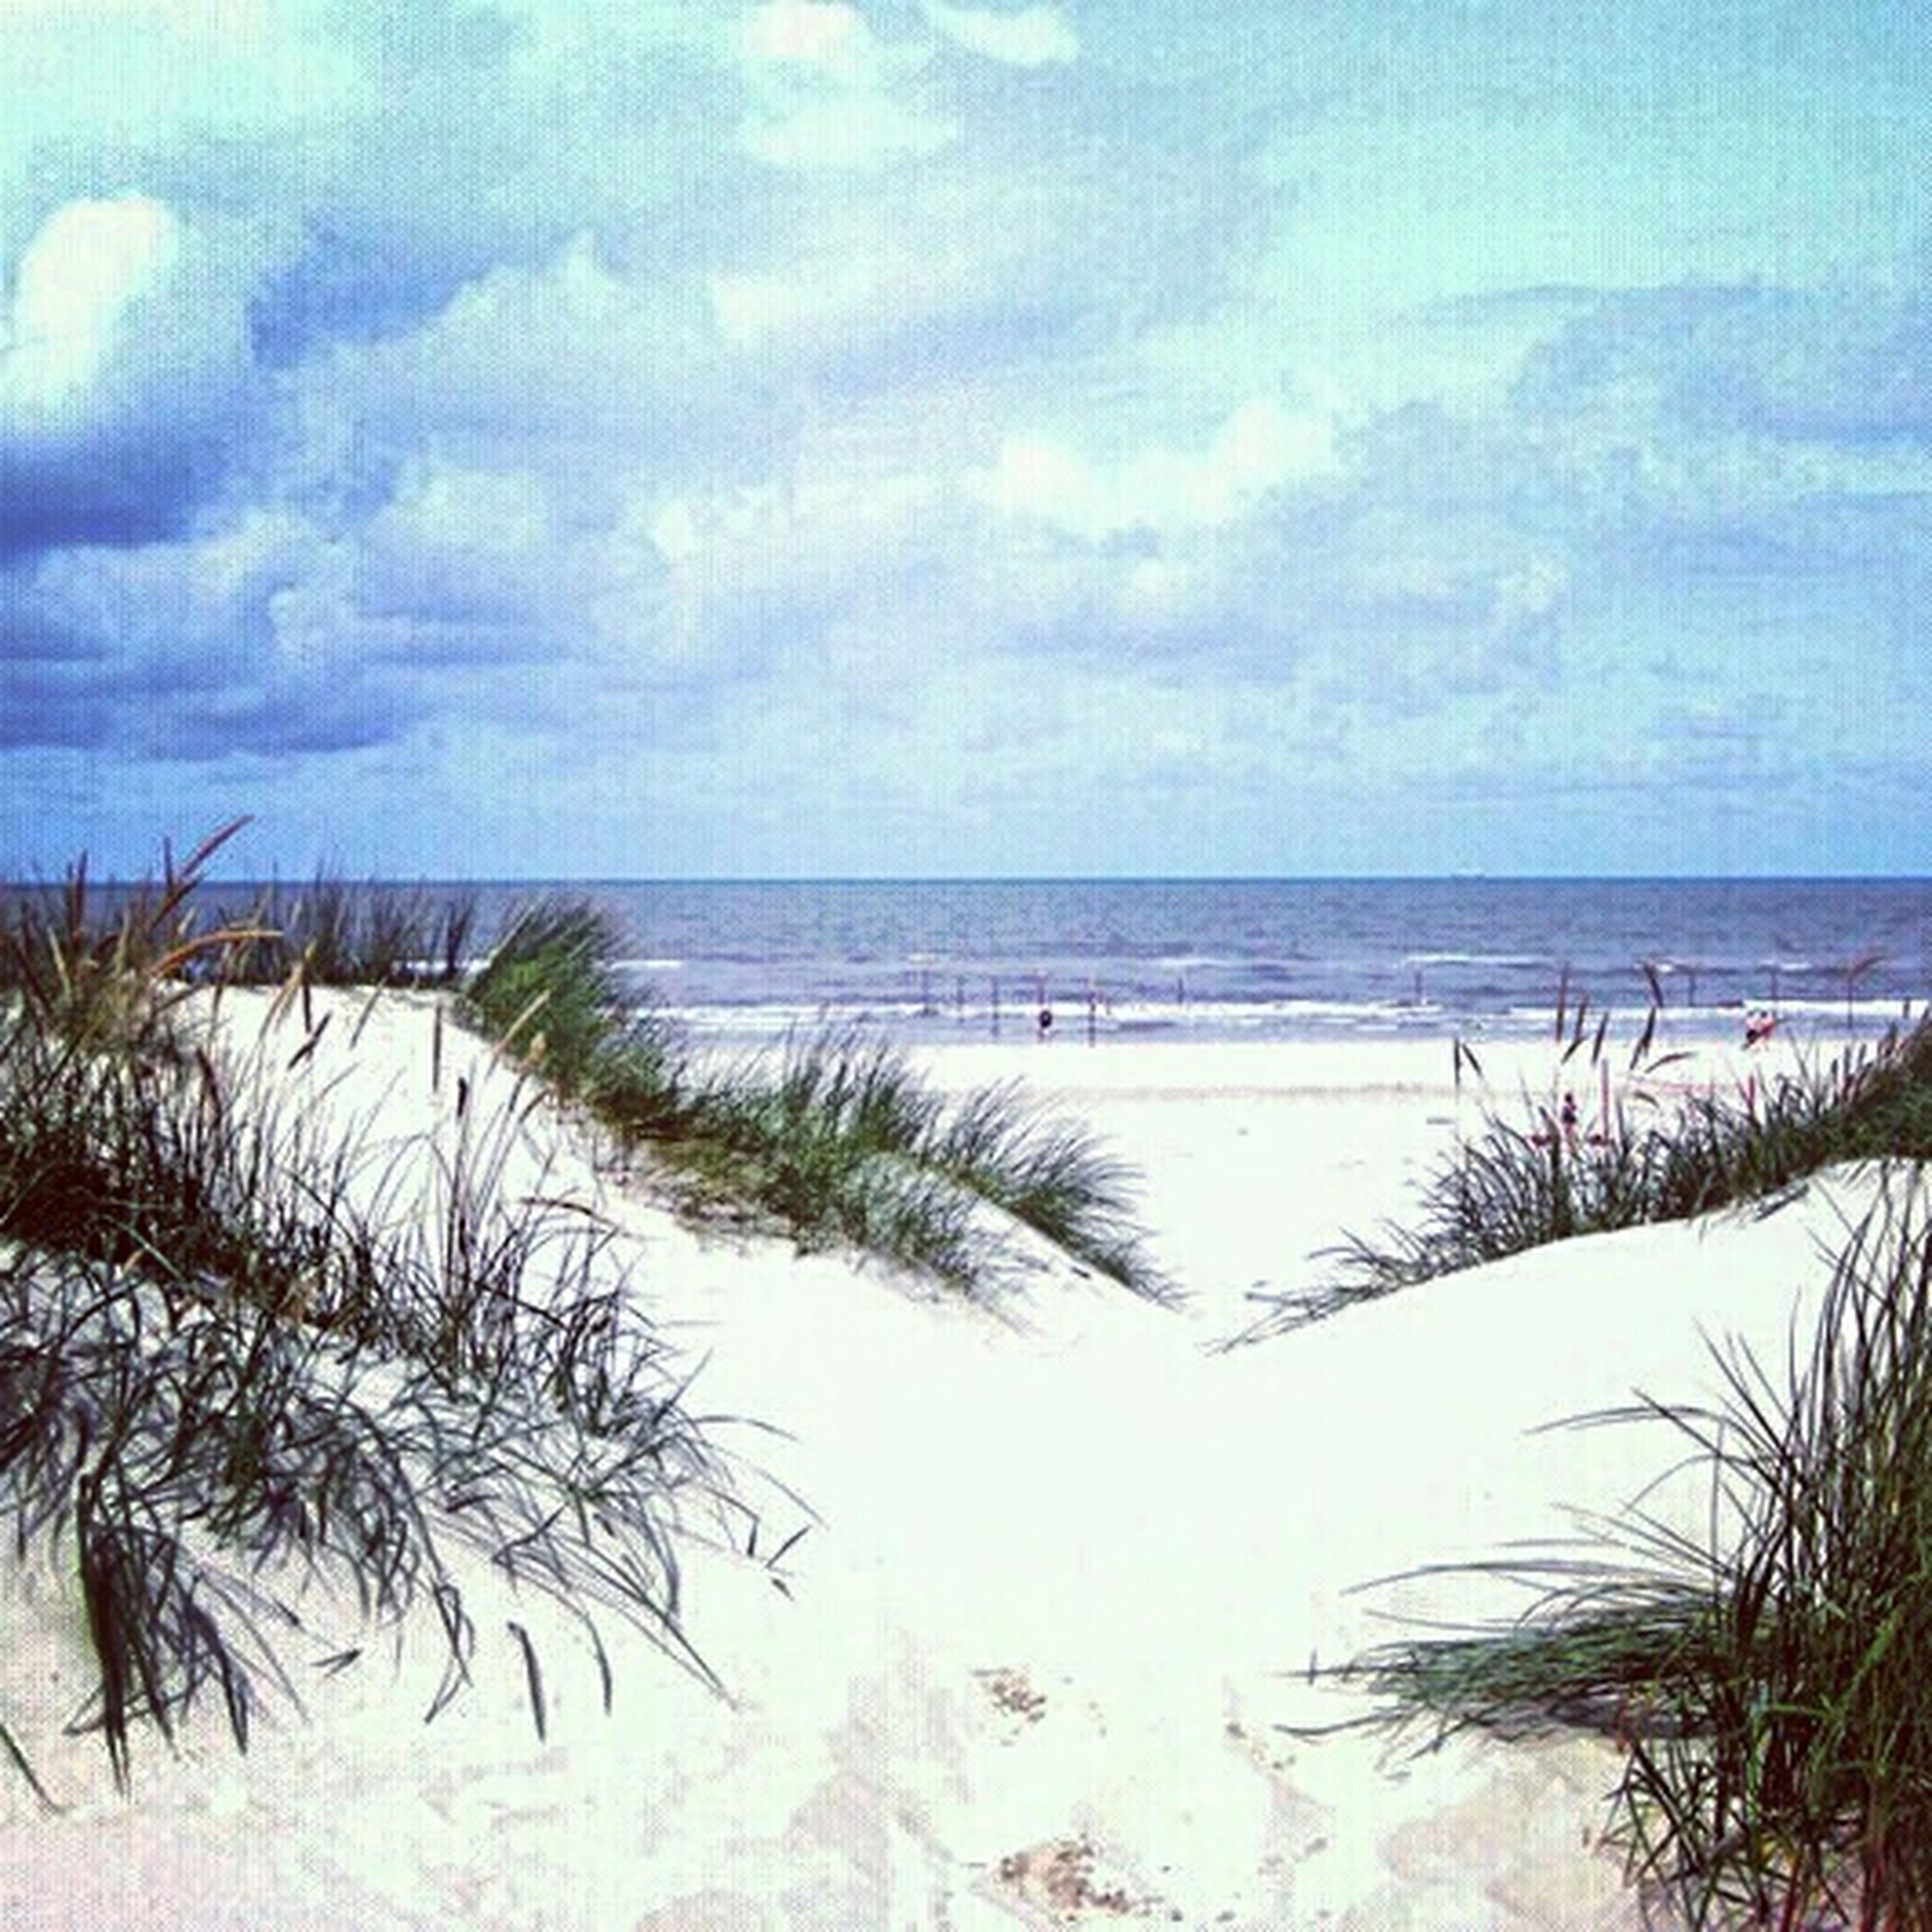 sea, horizon over water, water, beach, sky, tranquil scene, tranquility, scenics, beauty in nature, shore, nature, sand, cloud - sky, cloud, plant, idyllic, growth, ocean, coastline, cloudy